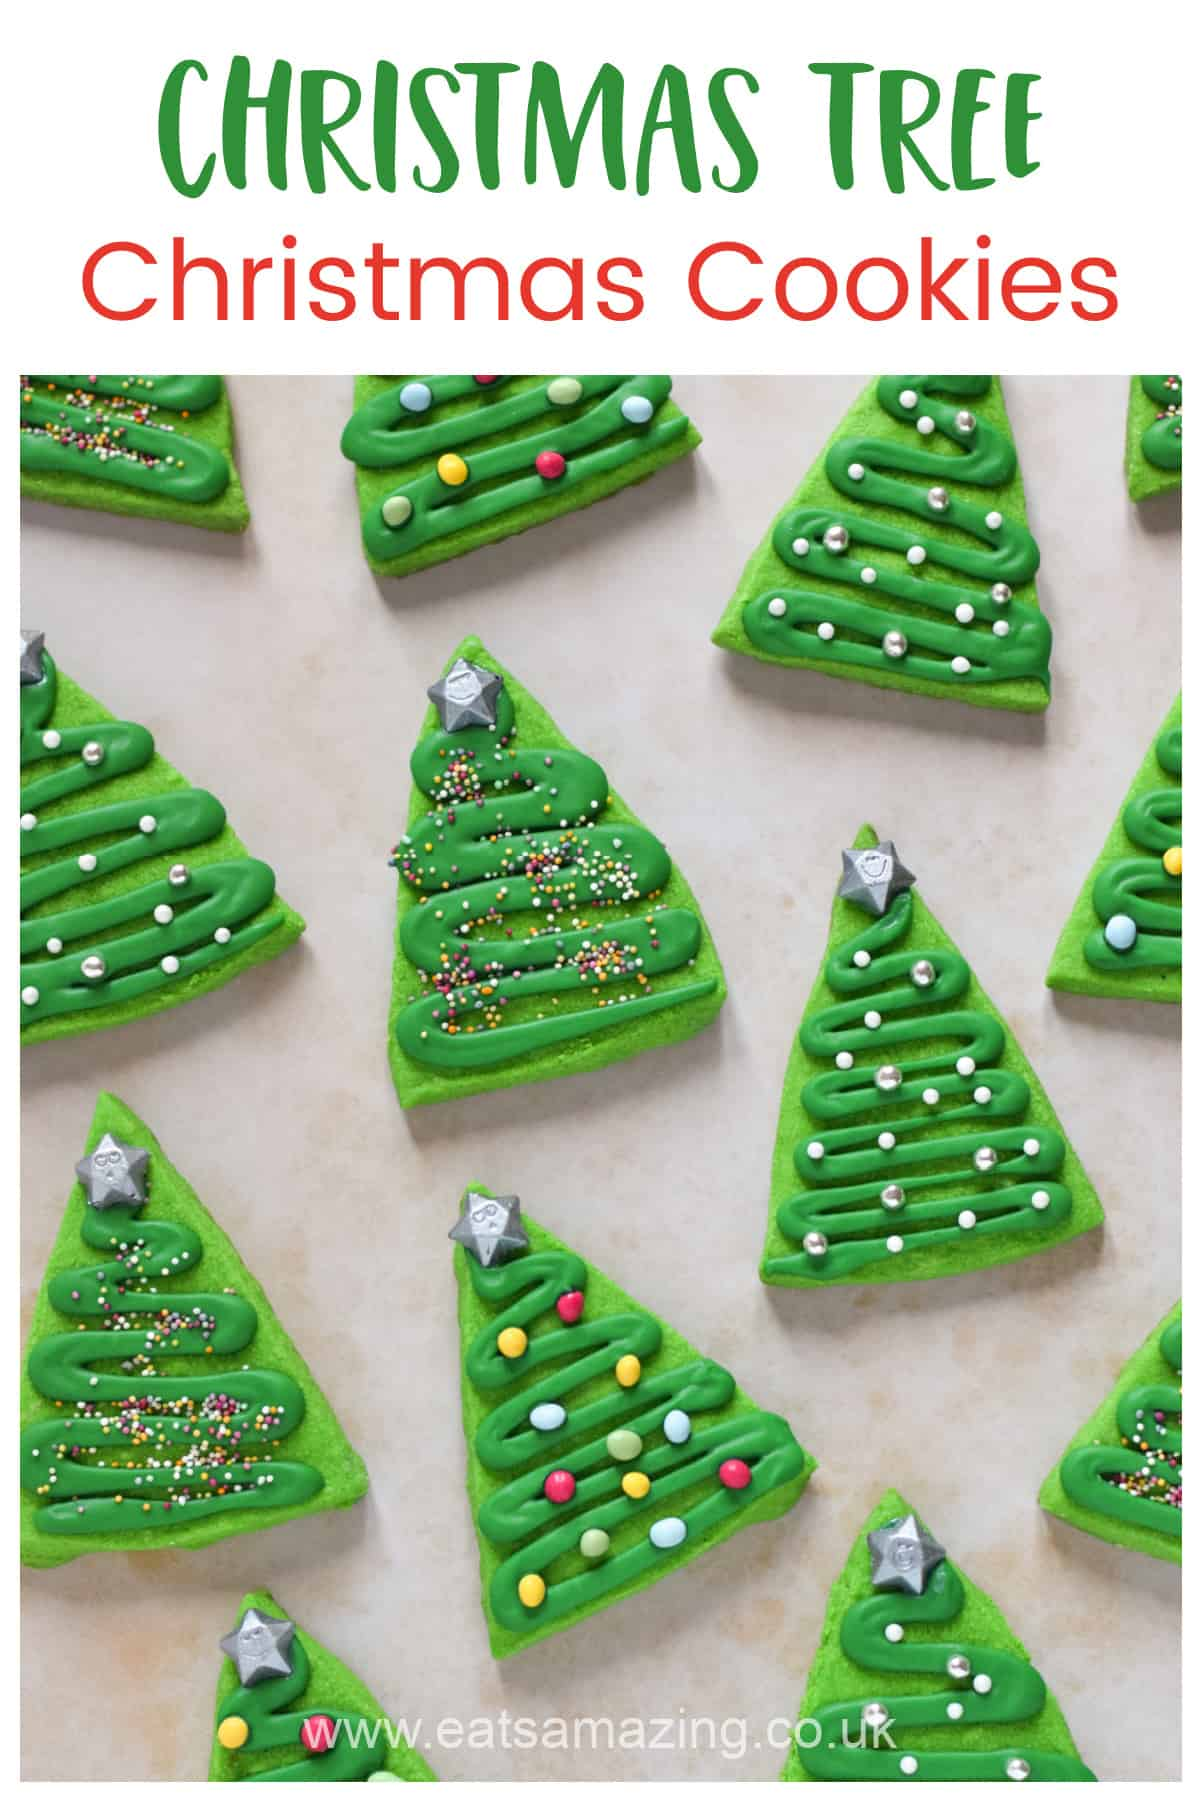 Cute and easy Christmas tree Christmas cookies recipe - perfect for baking with kids and homemade gifts